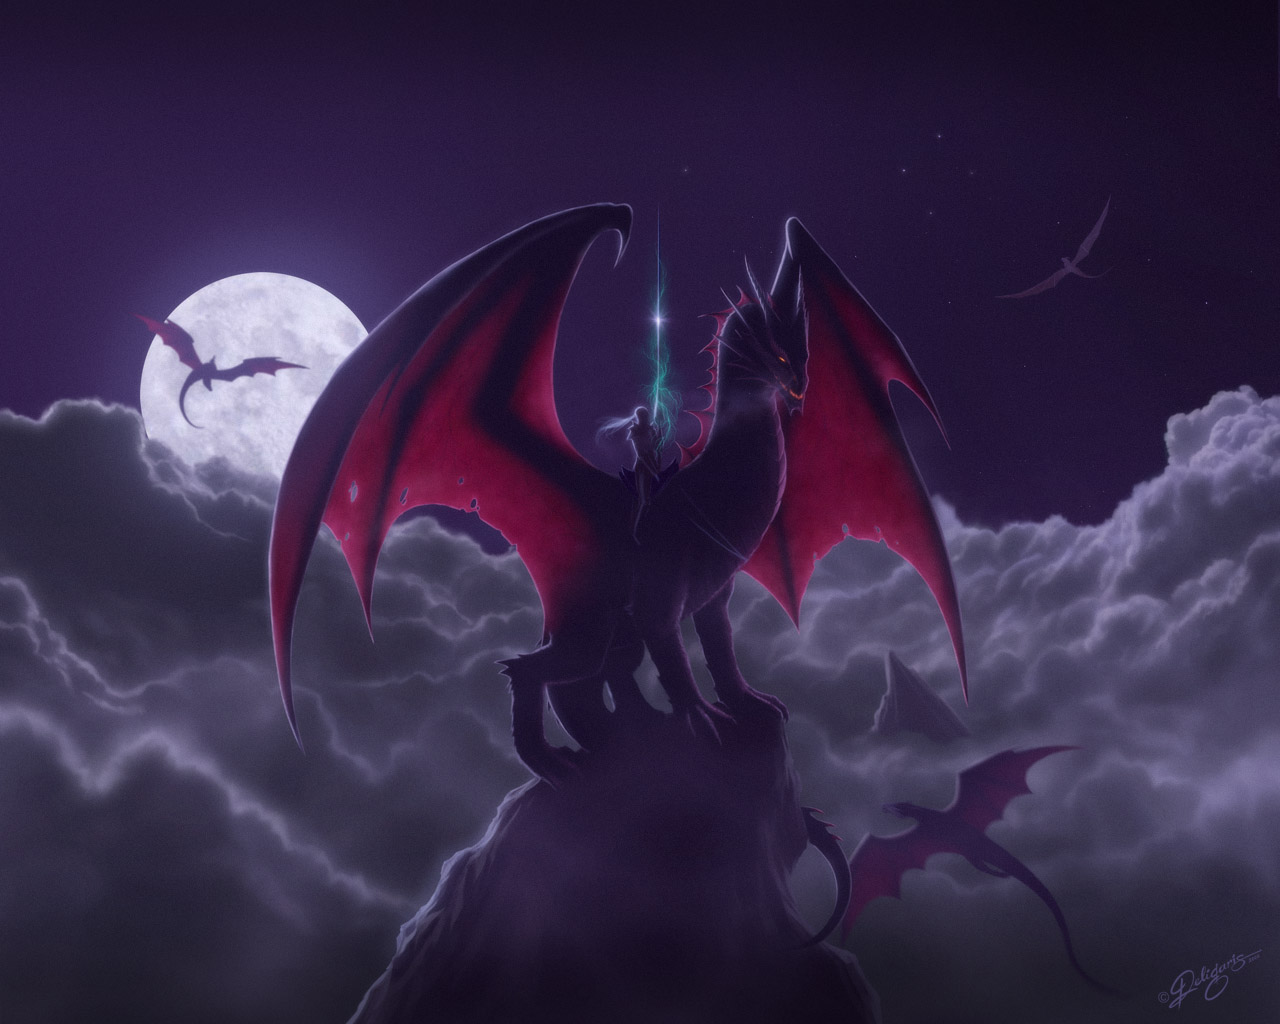 1280x1024 Night Clouds Dragons wallpaper from Dragons wallpapers